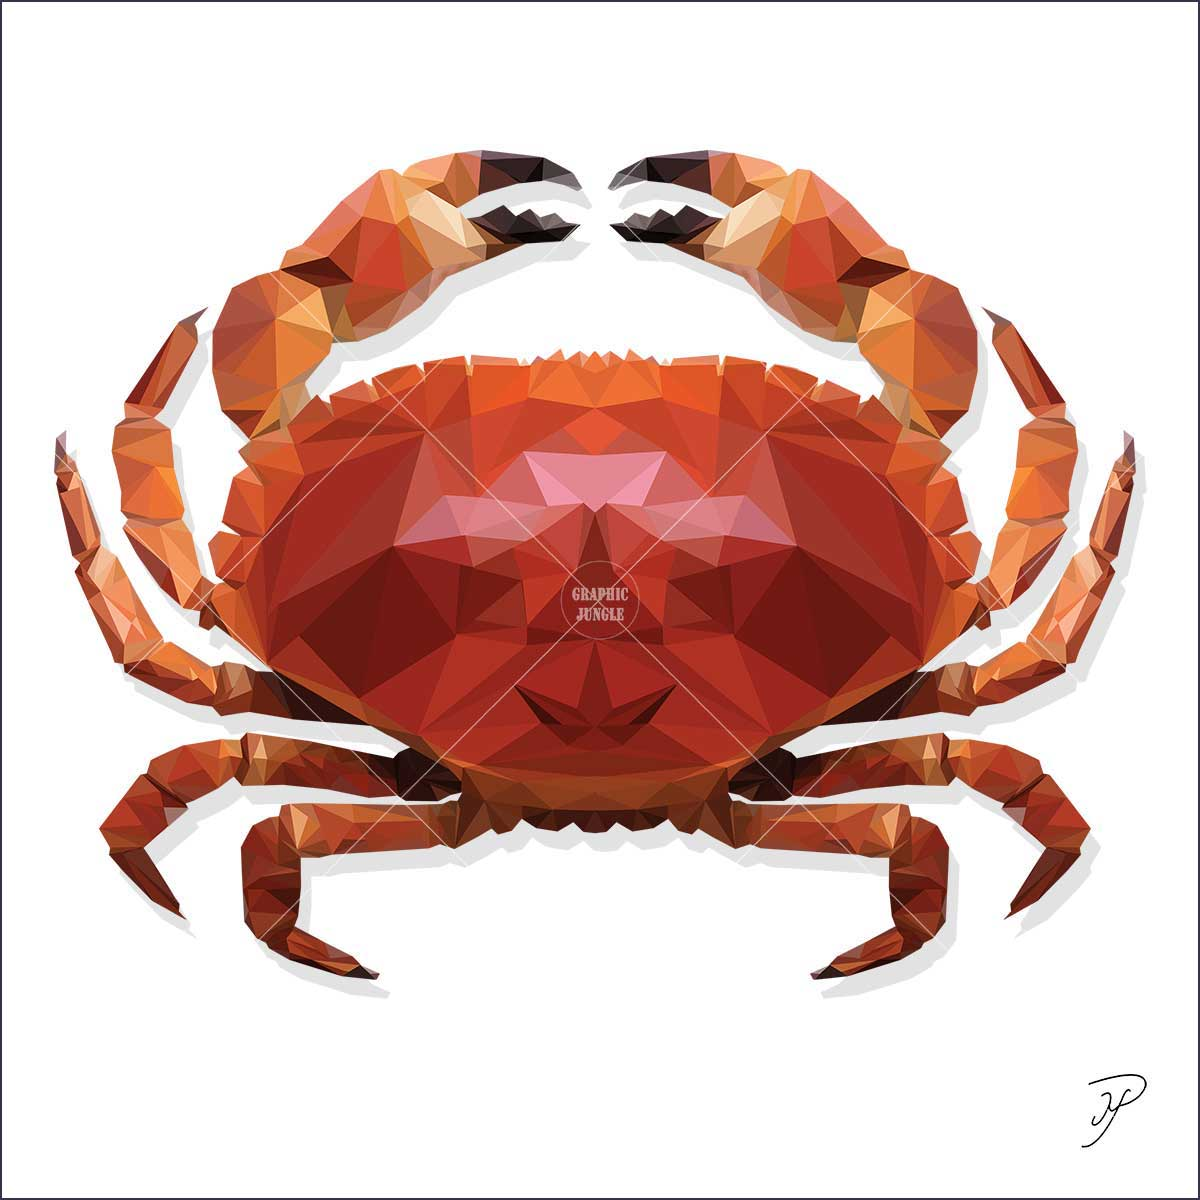 09 CRAB - Graphic Jungle